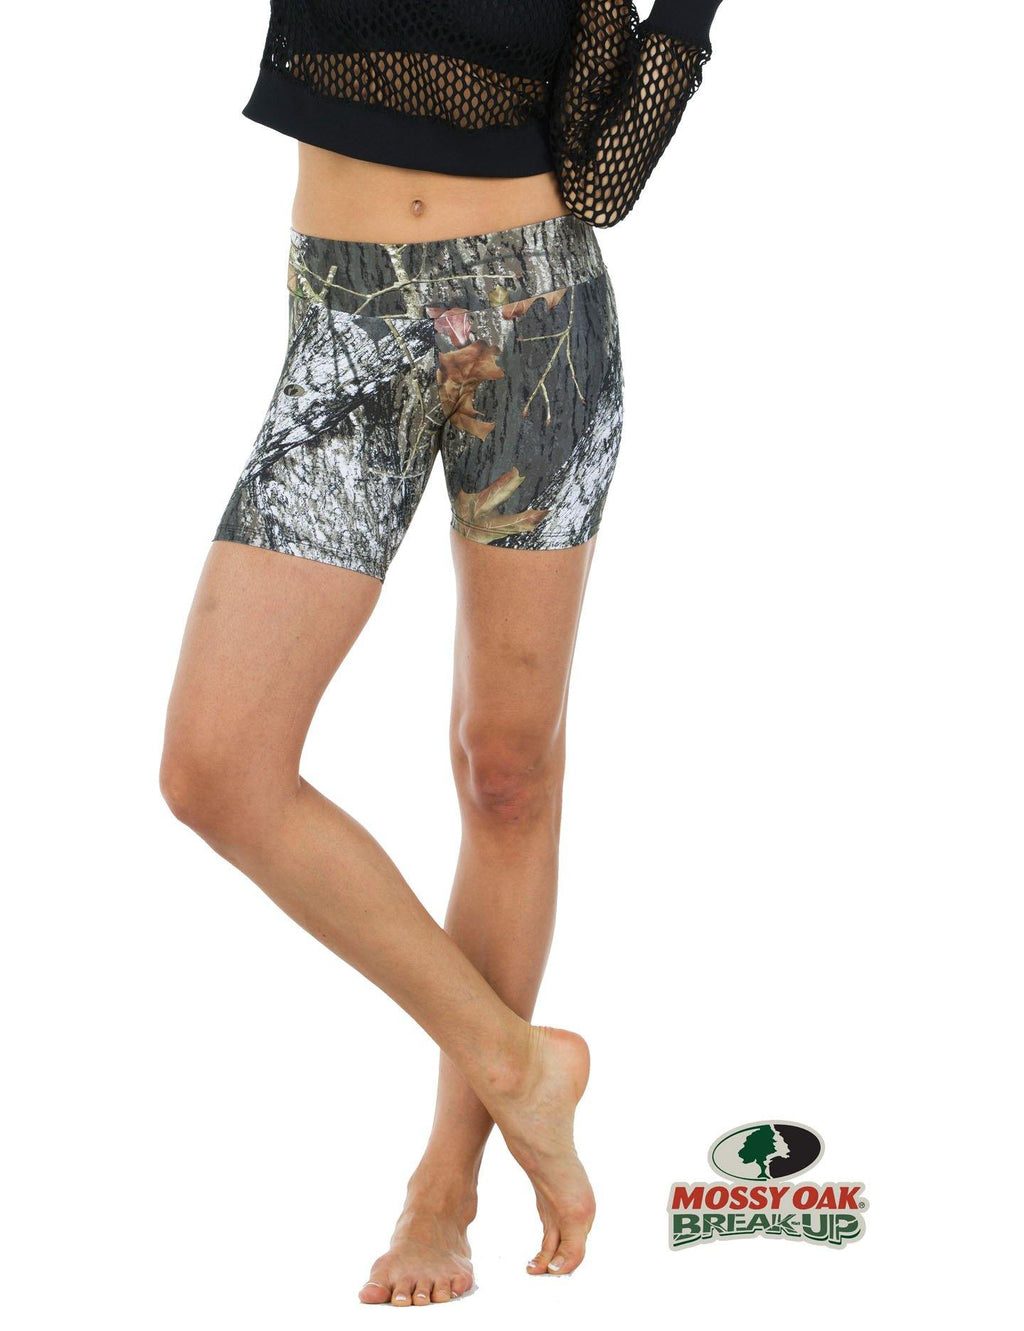 Apsara Shorts Low Waist, Mossy Oak Break-Up